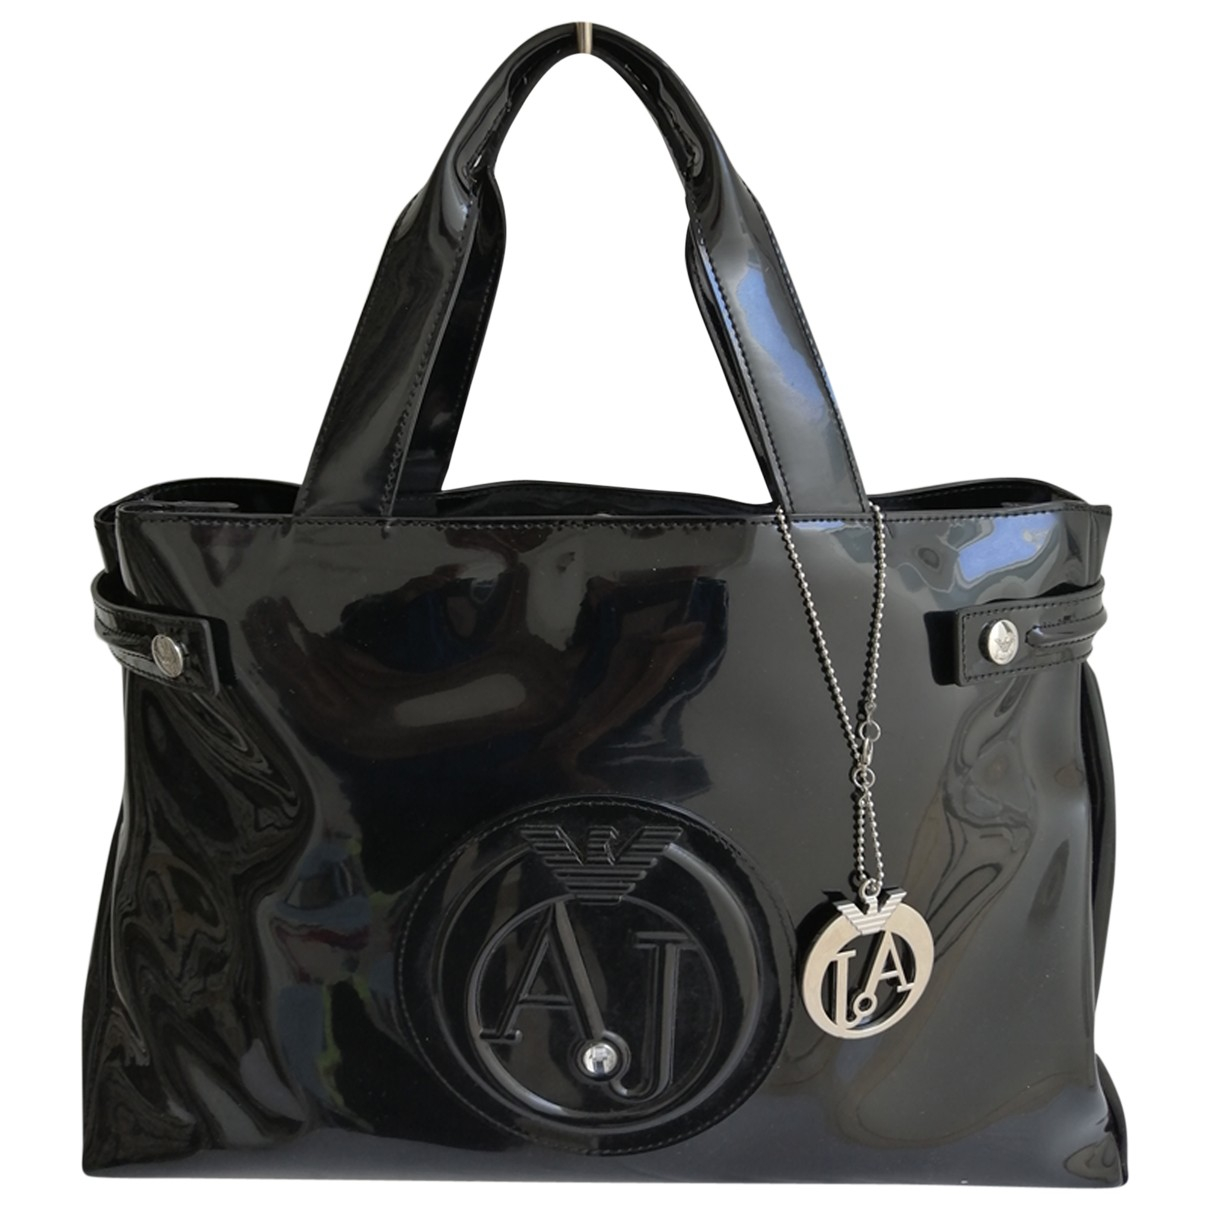 Armani Jeans N Black Patent leather handbag for Women N